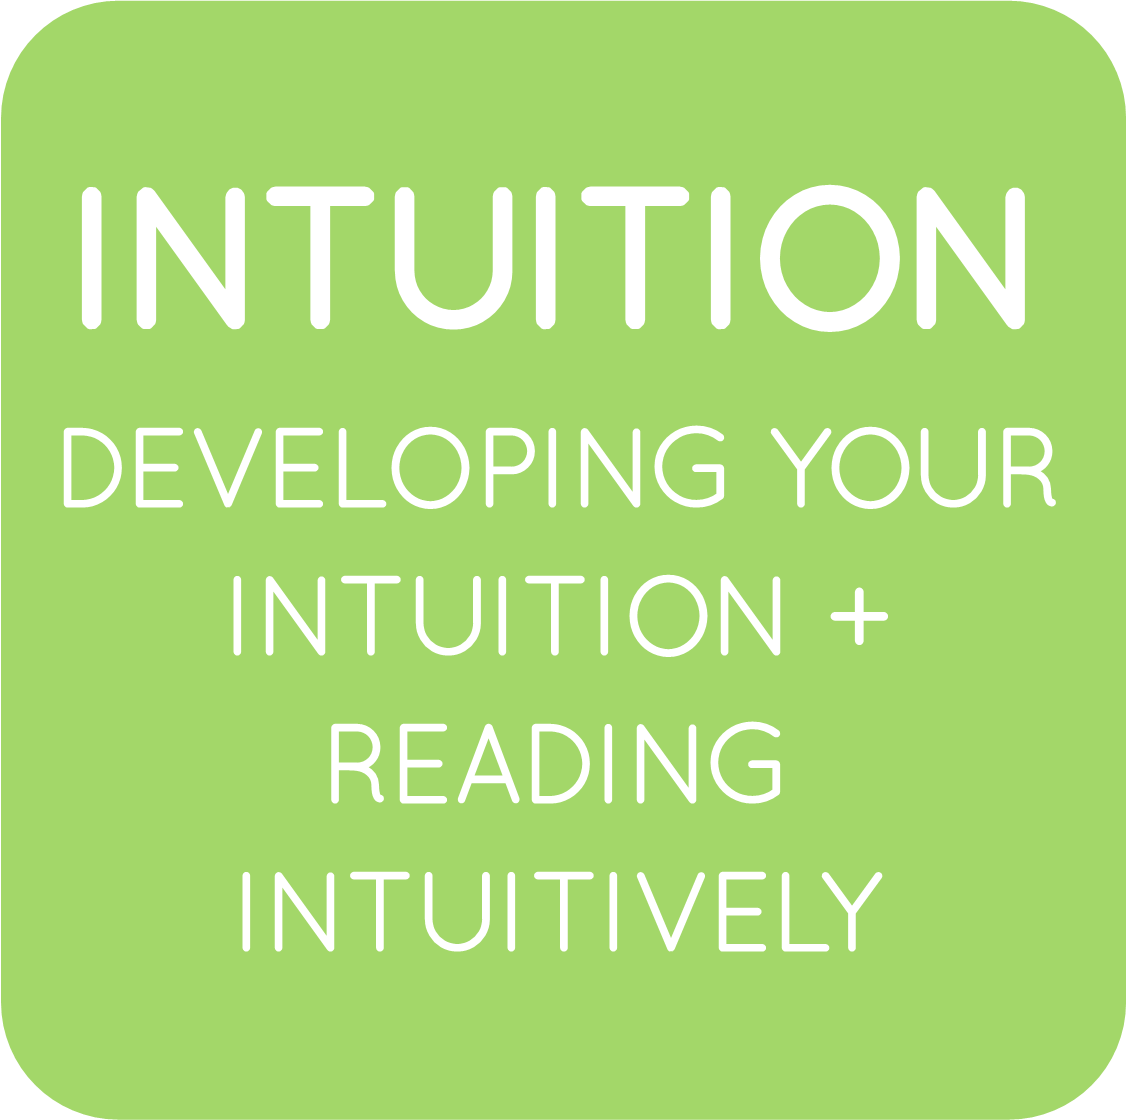 00-INTUITION.png